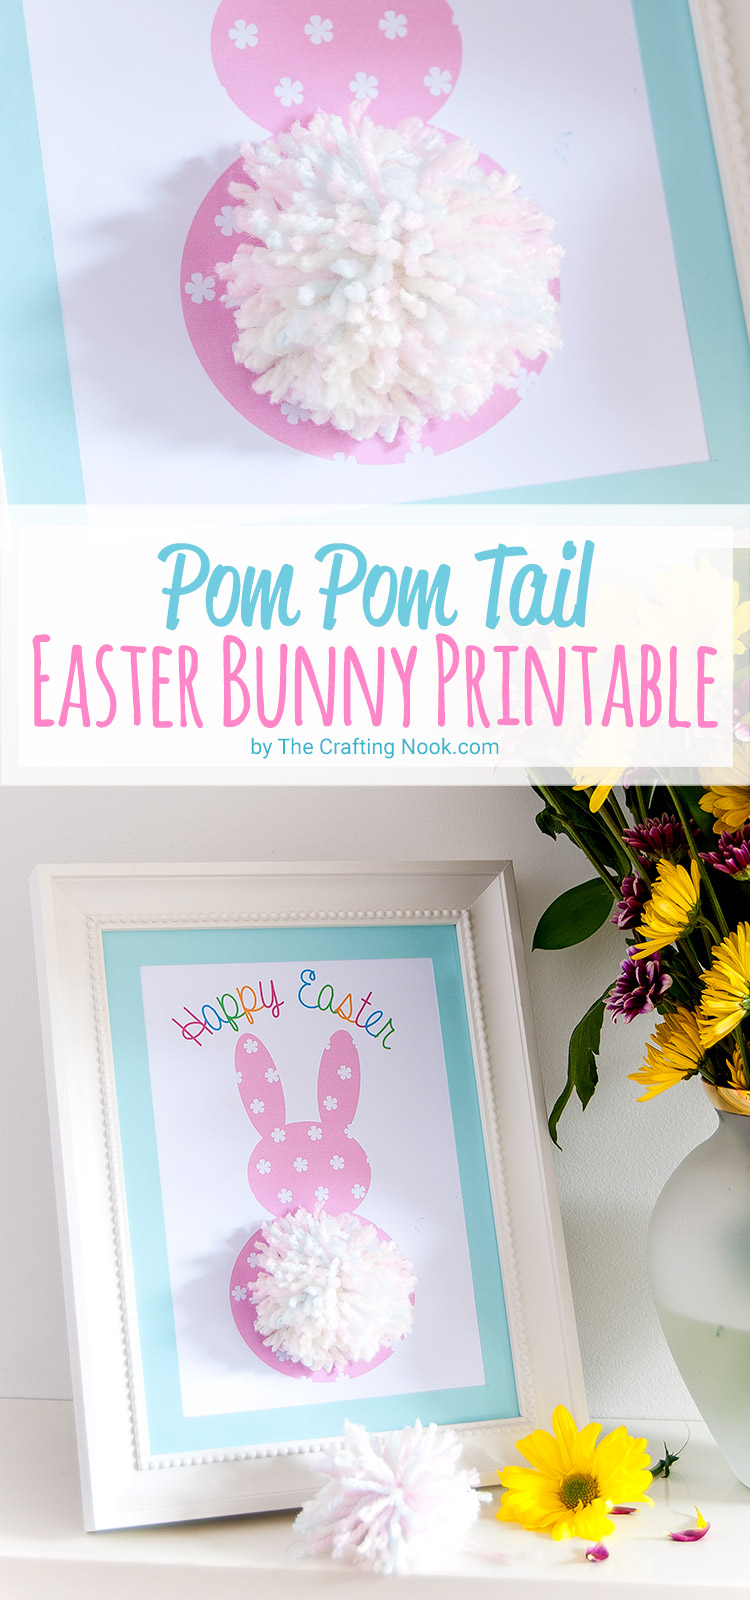 Cute Pom Pom Tail Easter Bunny